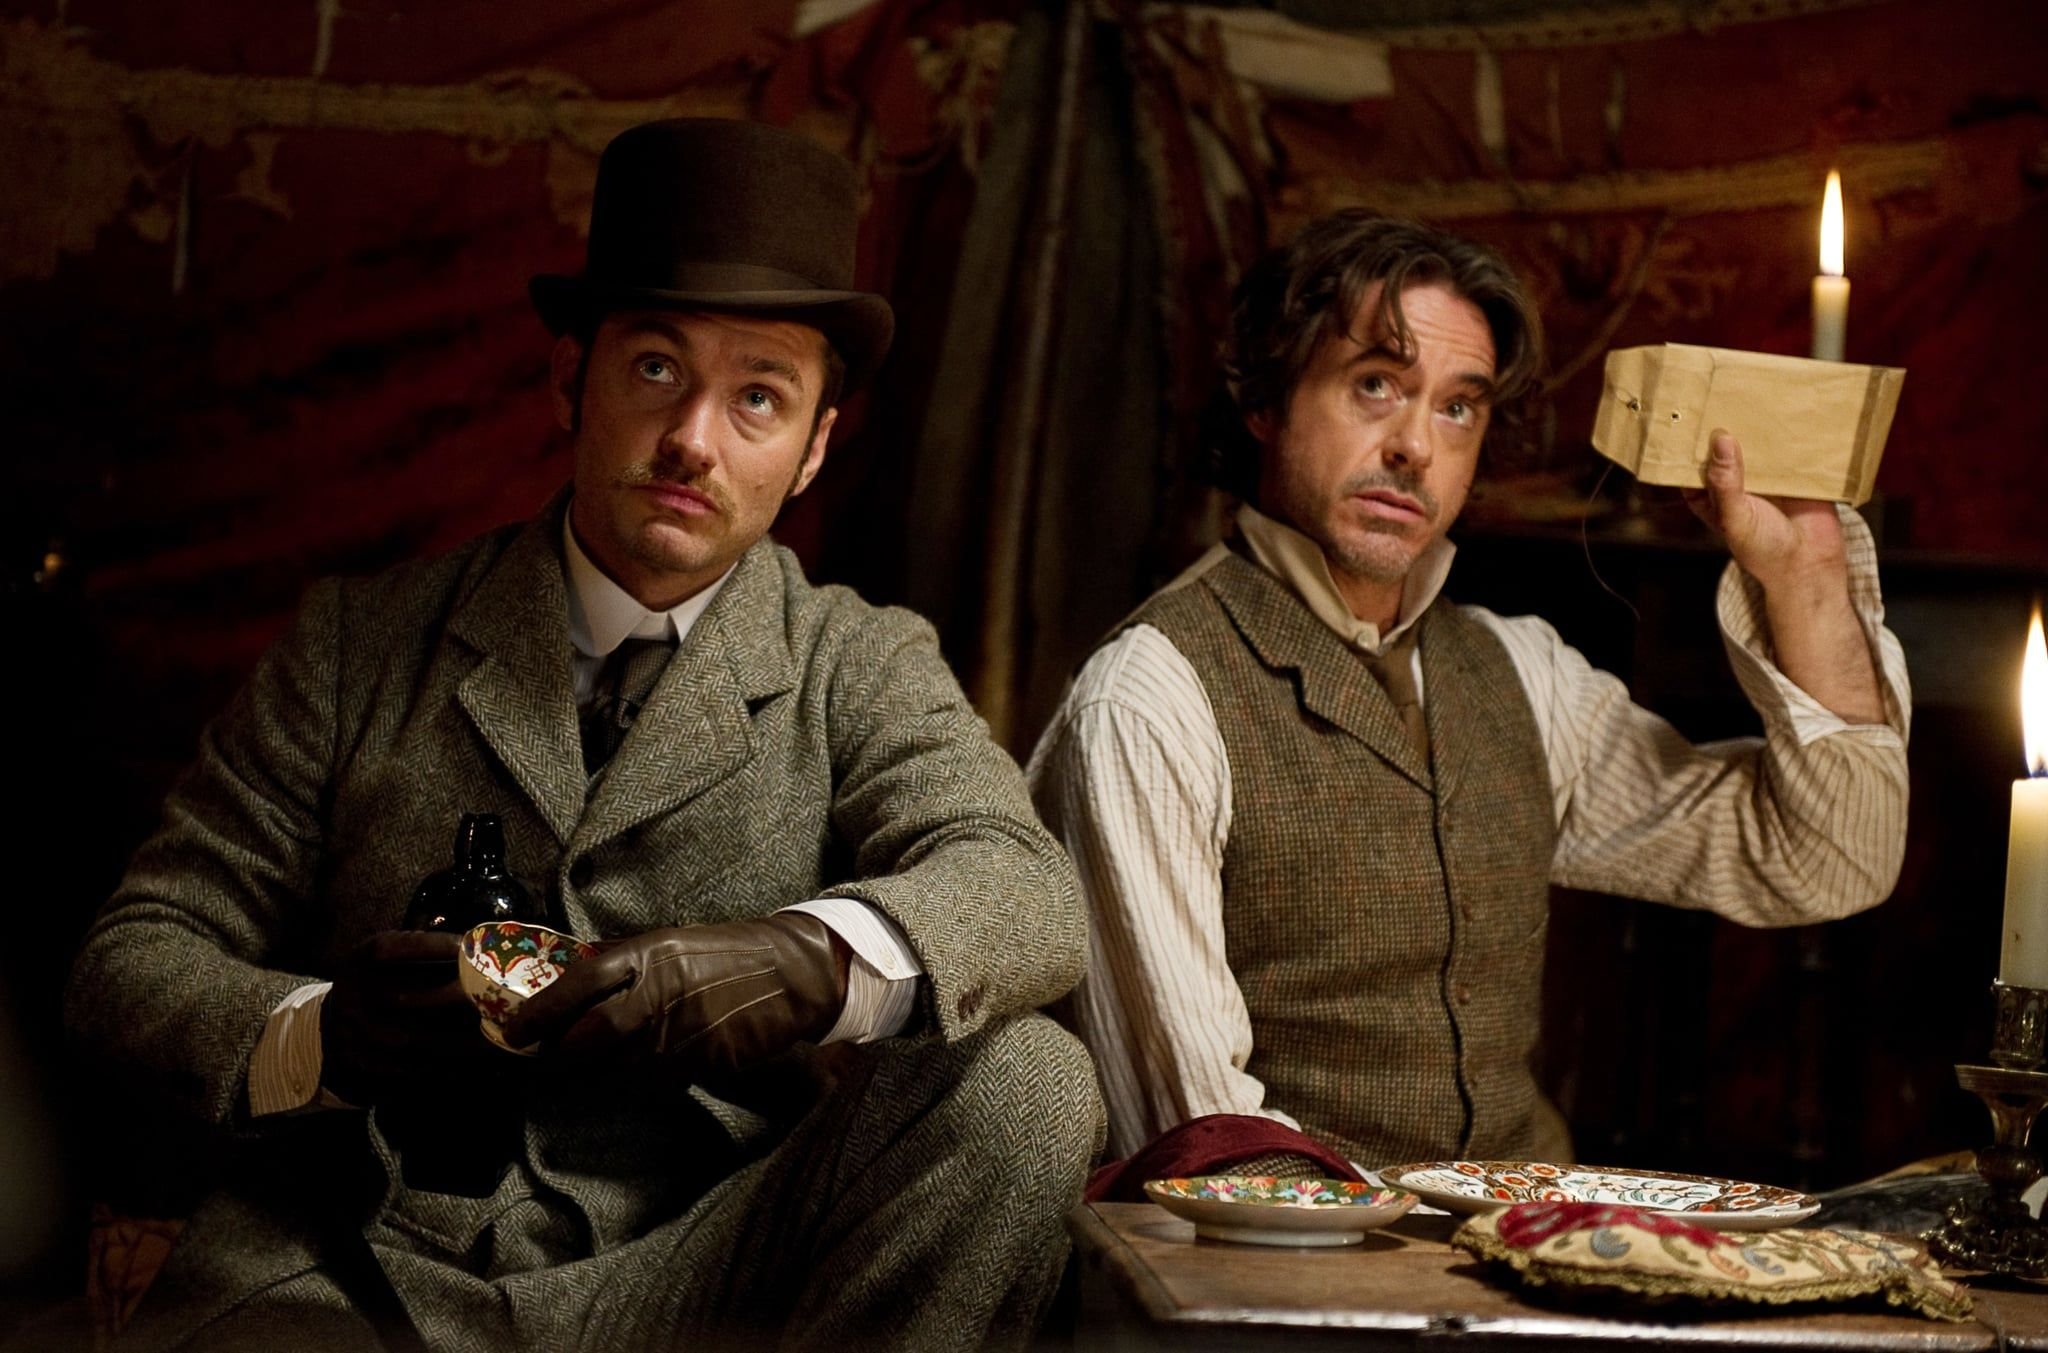 Sherlock Holmes 3: Release Date, Plot and Cast. Latest Updates!